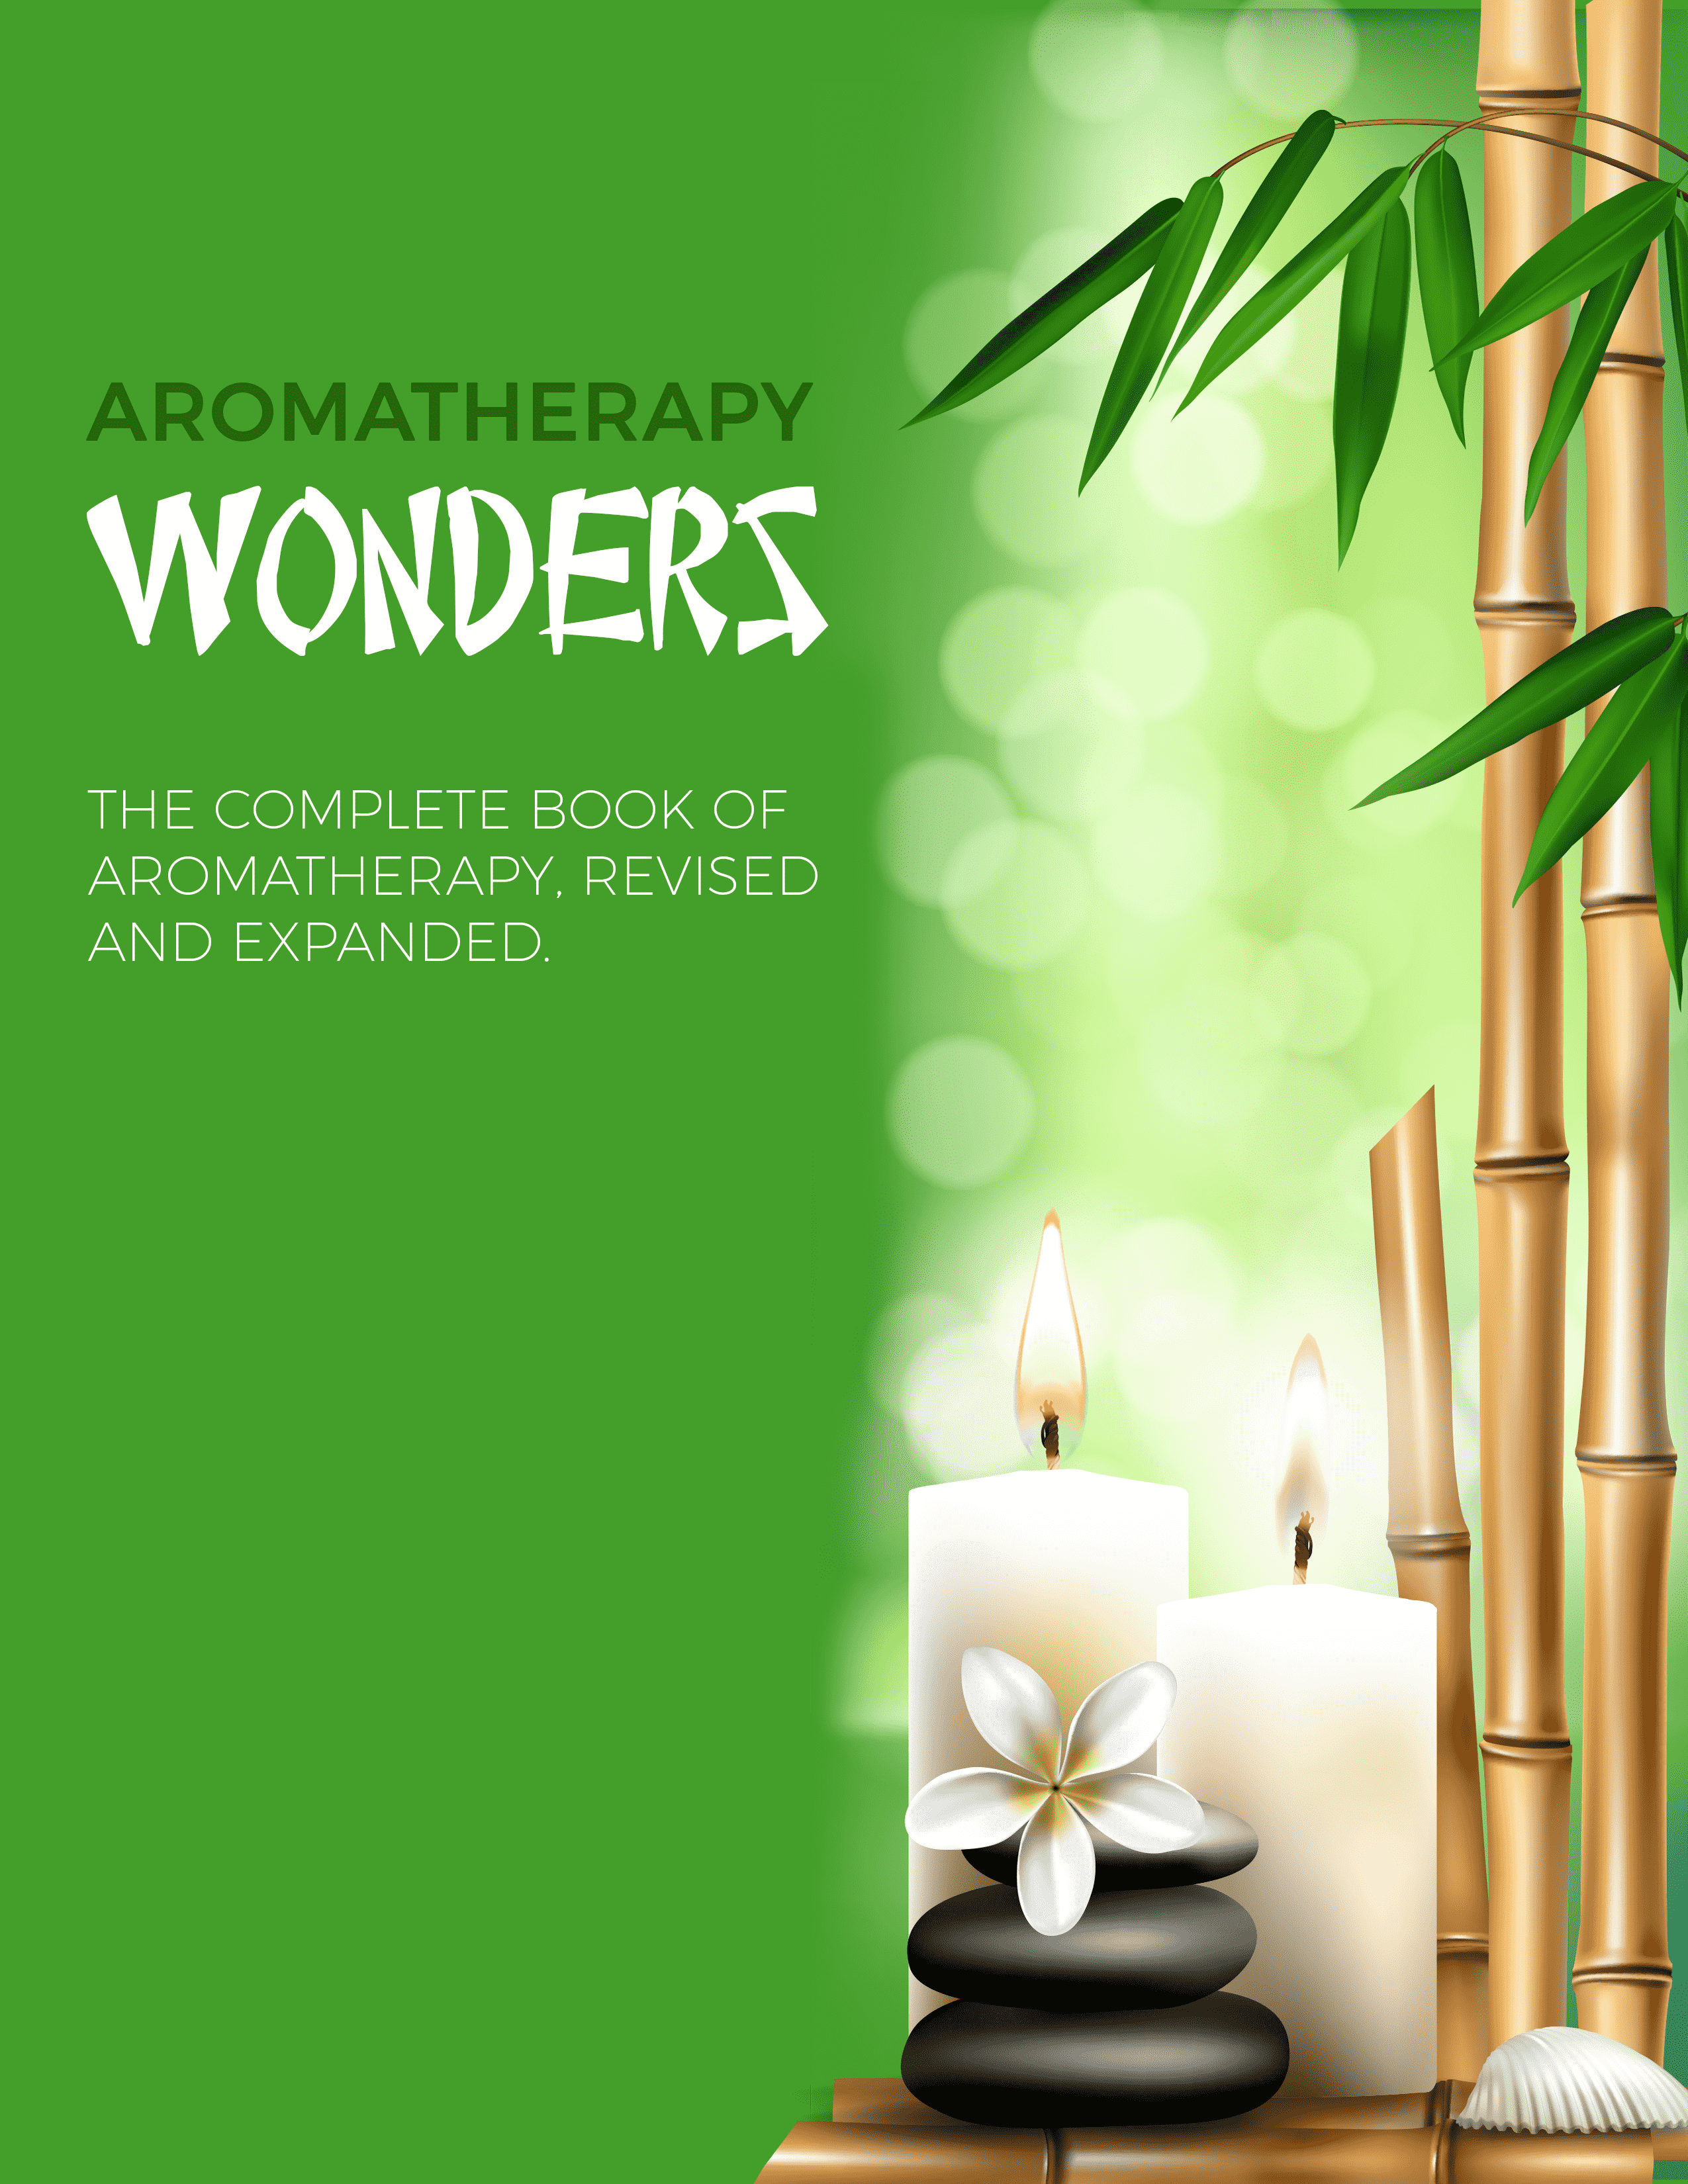 Aromatherapy Wonders (The Complete Book Of Aromatherapy Revised And Expanded) Ebook's Ebook Image